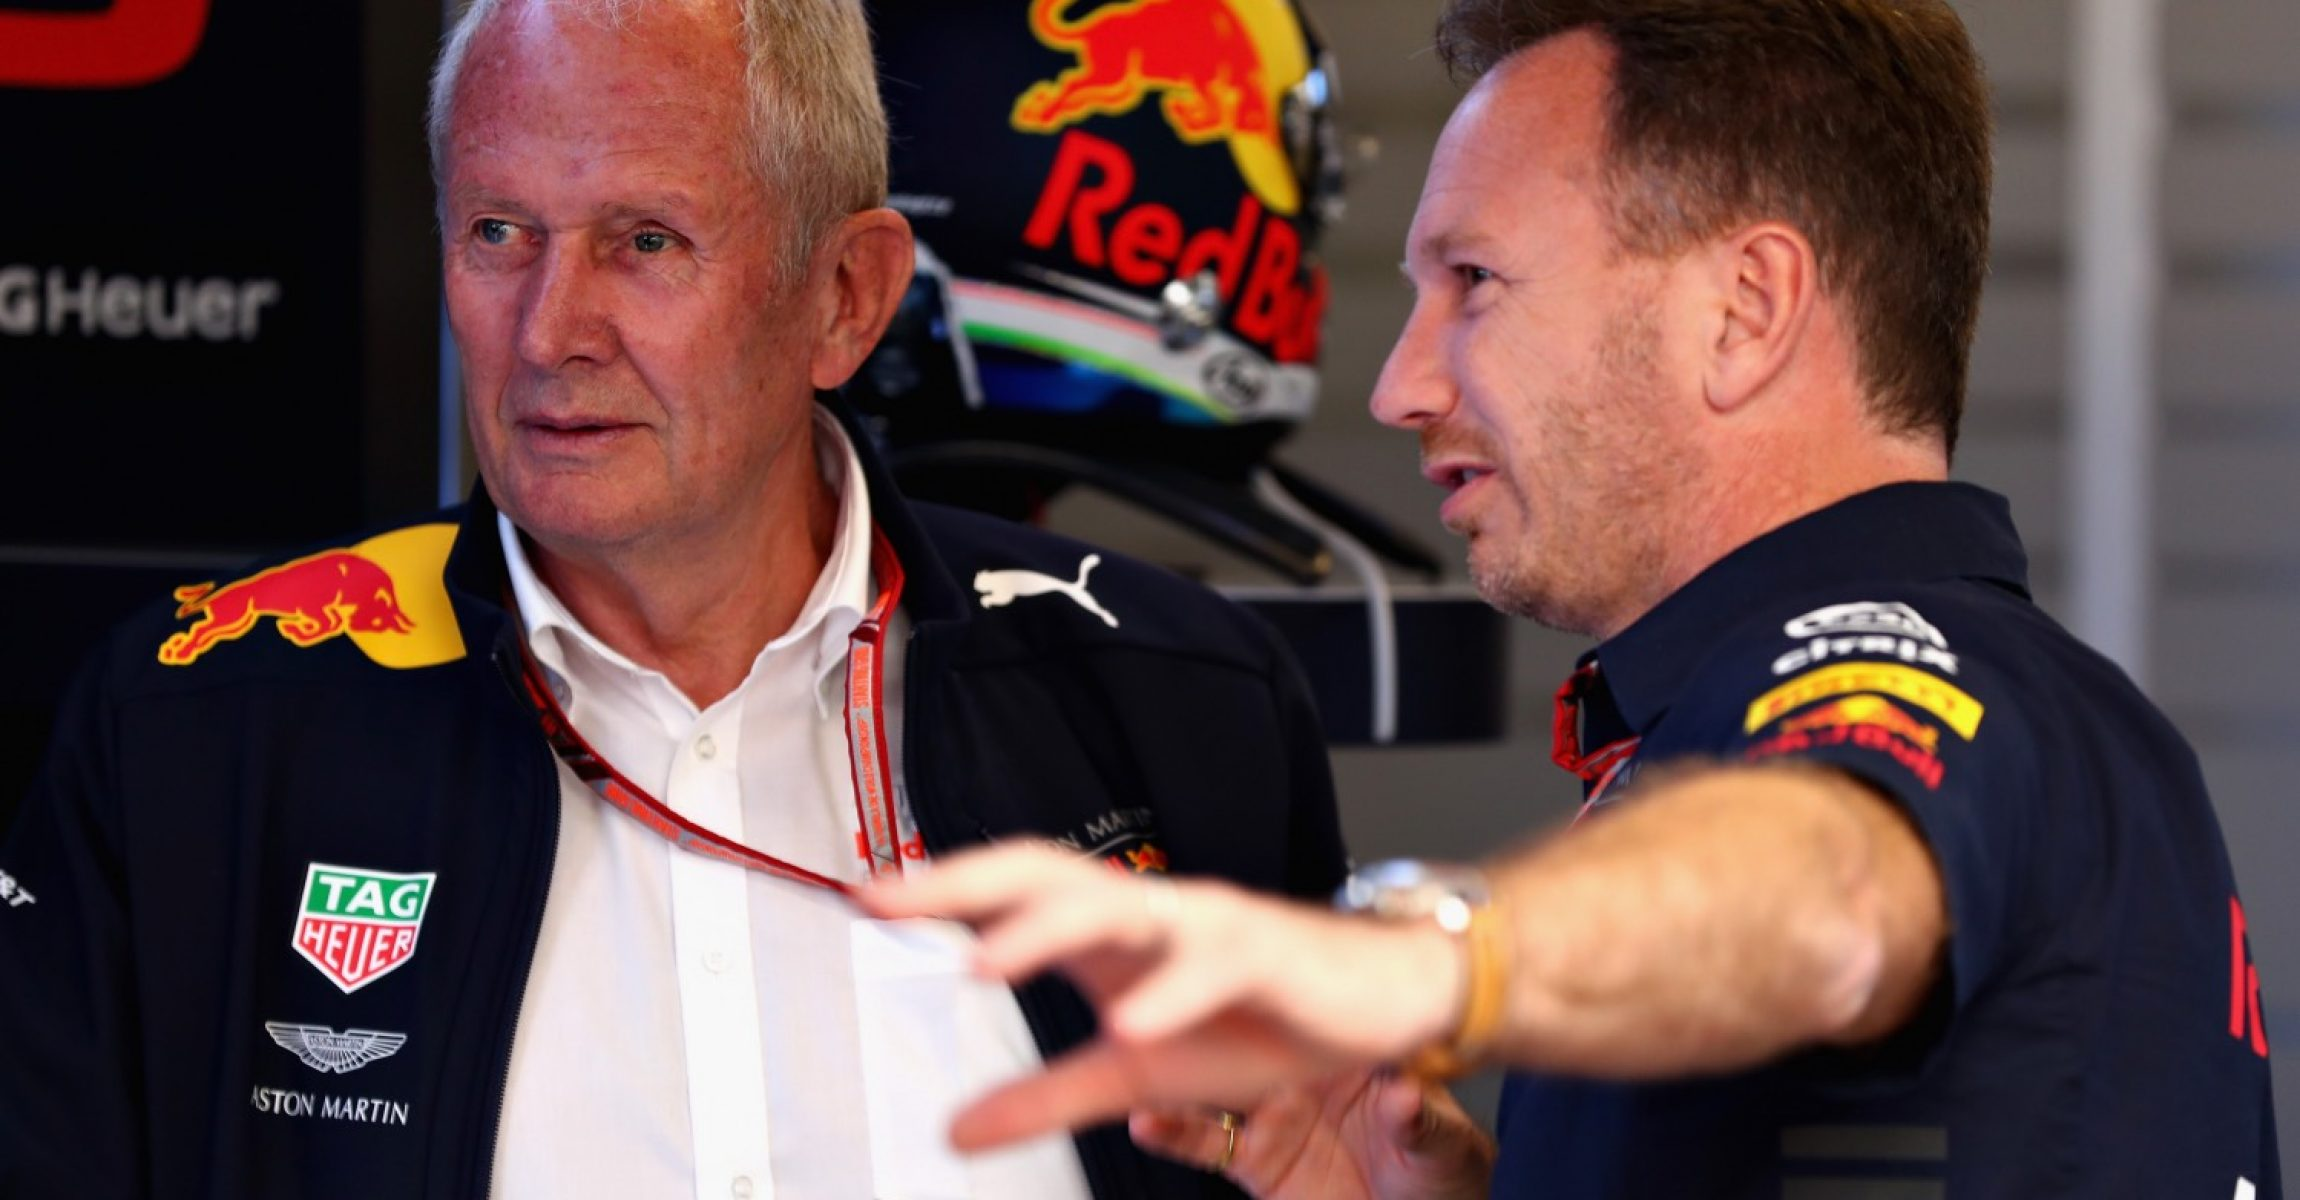 MONTMELO, SPAIN - MAY 12: Red Bull Racing Team Principal Christian Horner talks with Red Bull Racing Team Consultant Dr Helmut Marko in the garage during final practice for the Spanish Formula One Grand Prix at Circuit de Catalunya on May 12, 2018 in Montmelo, Spain.  (Photo by Mark Thompson/Getty Images)